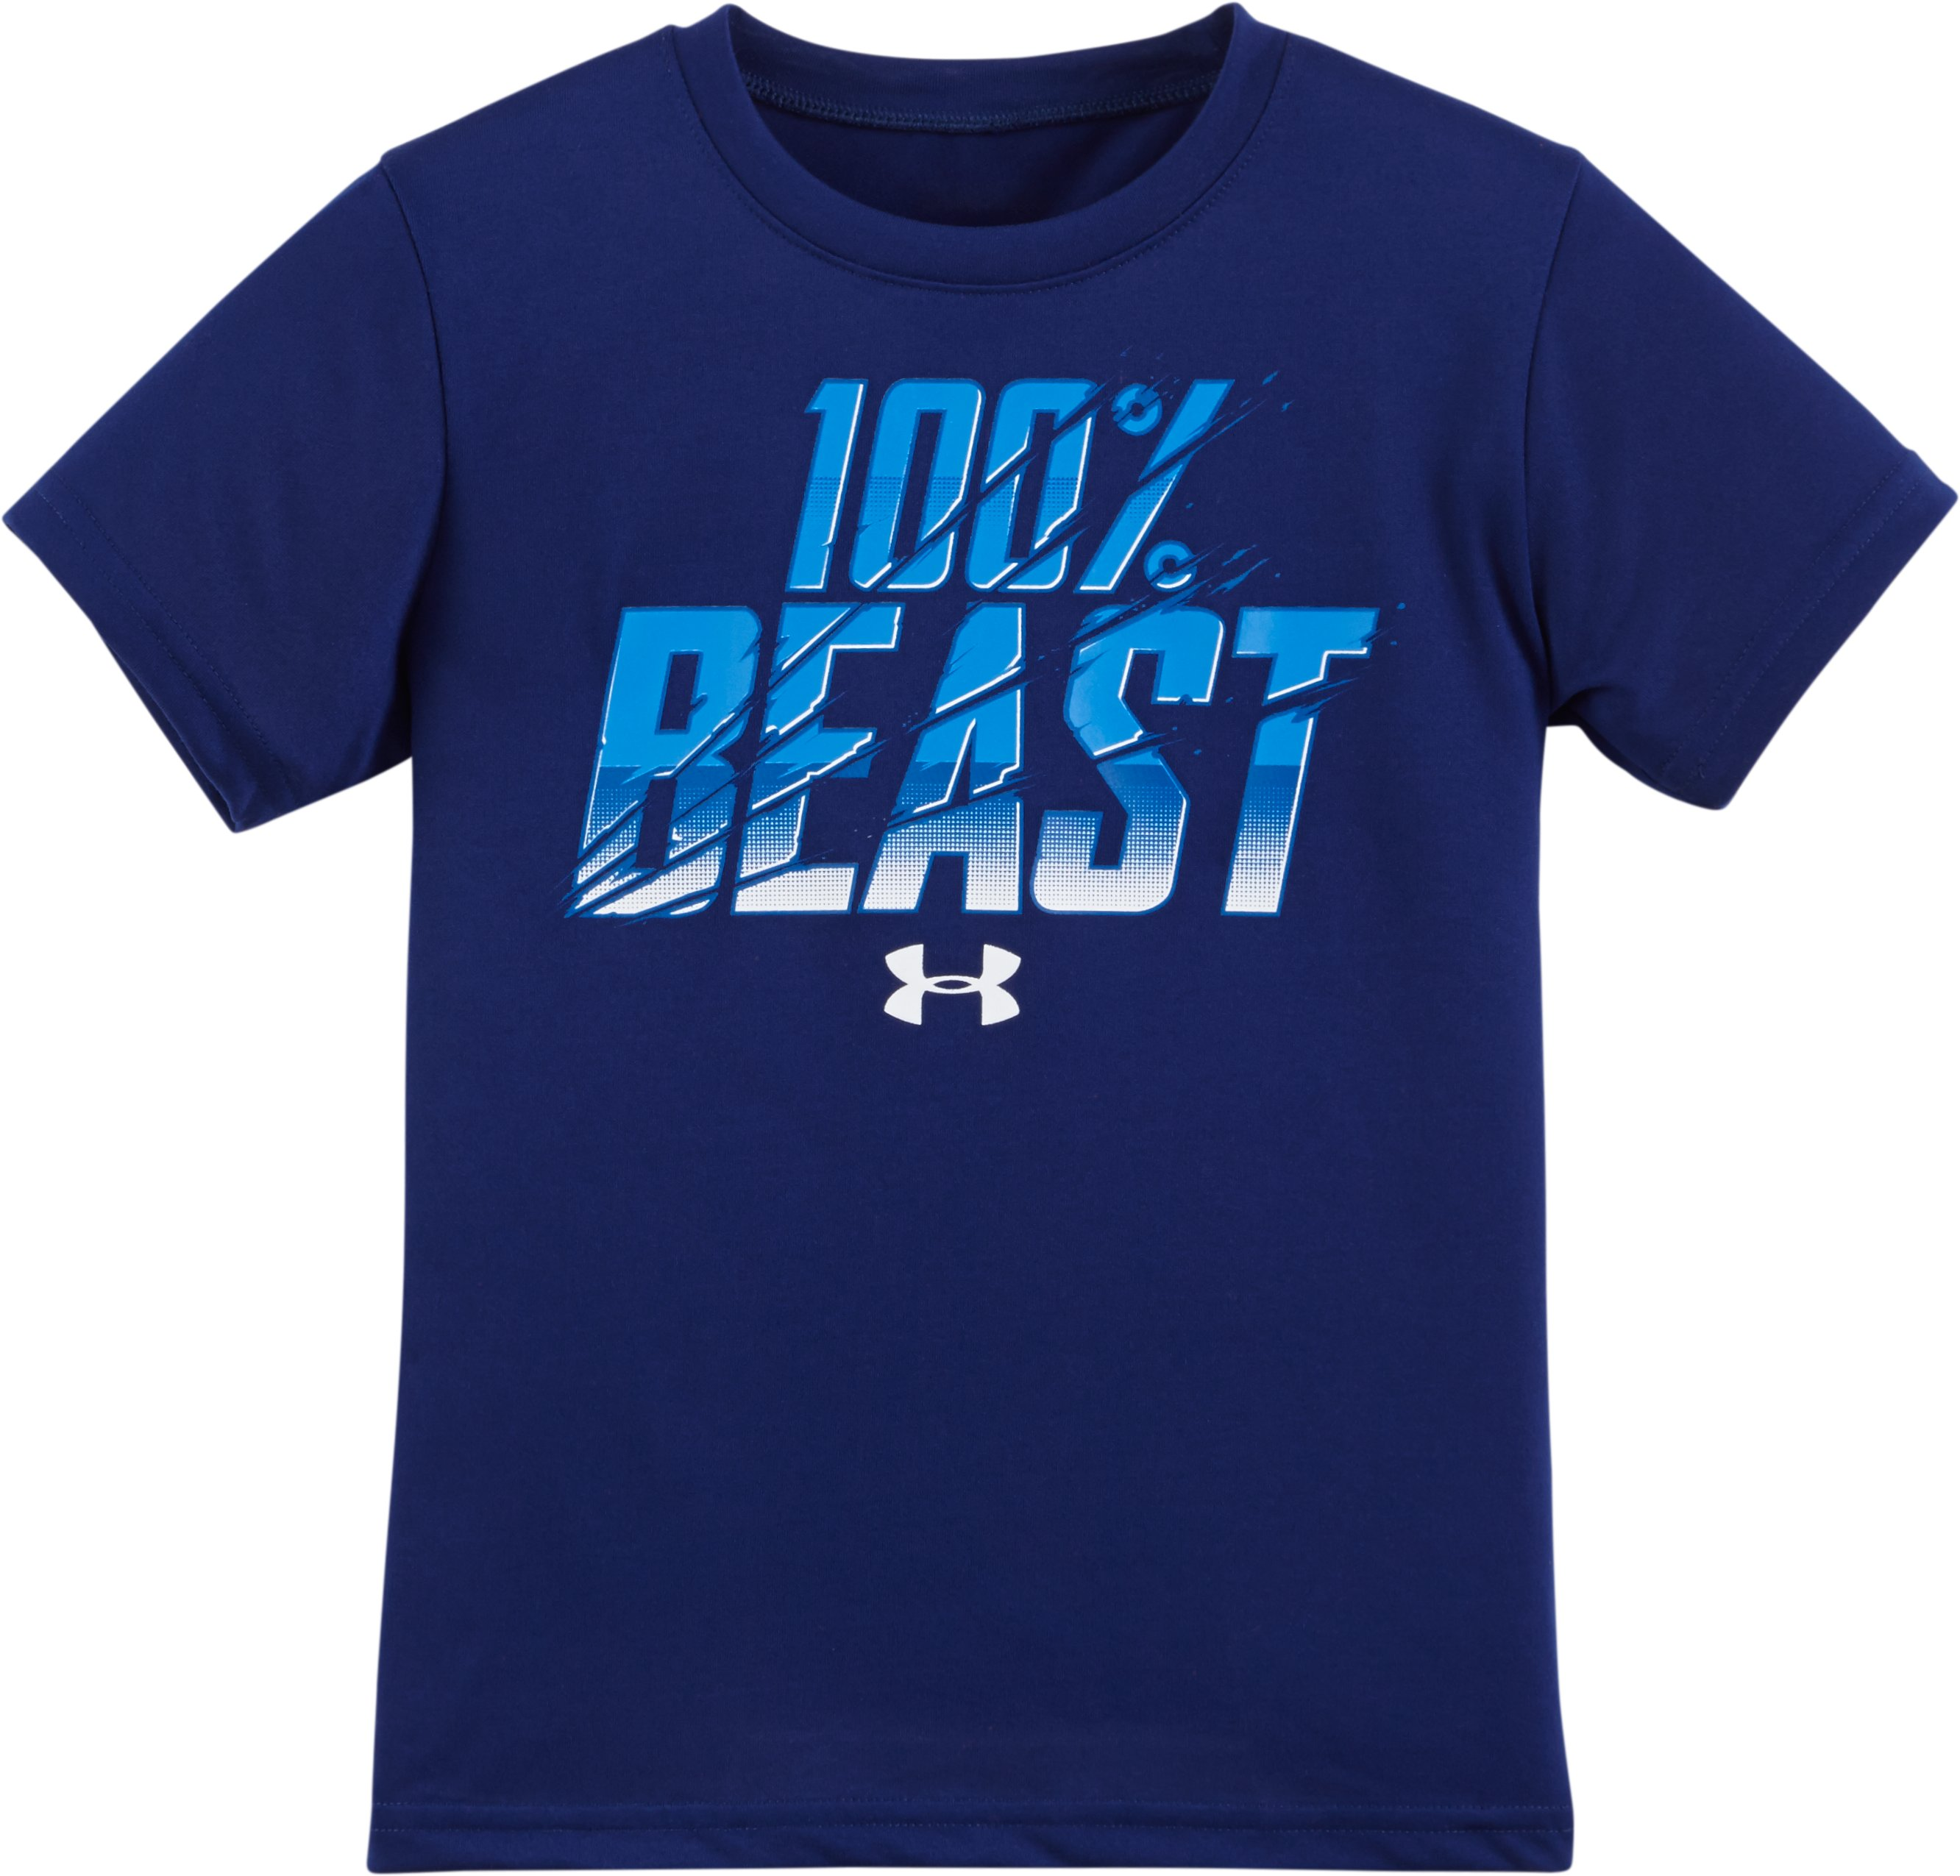 Boys' Infant UA 100% Beast Short Sleeve T-Shirt, Caspian